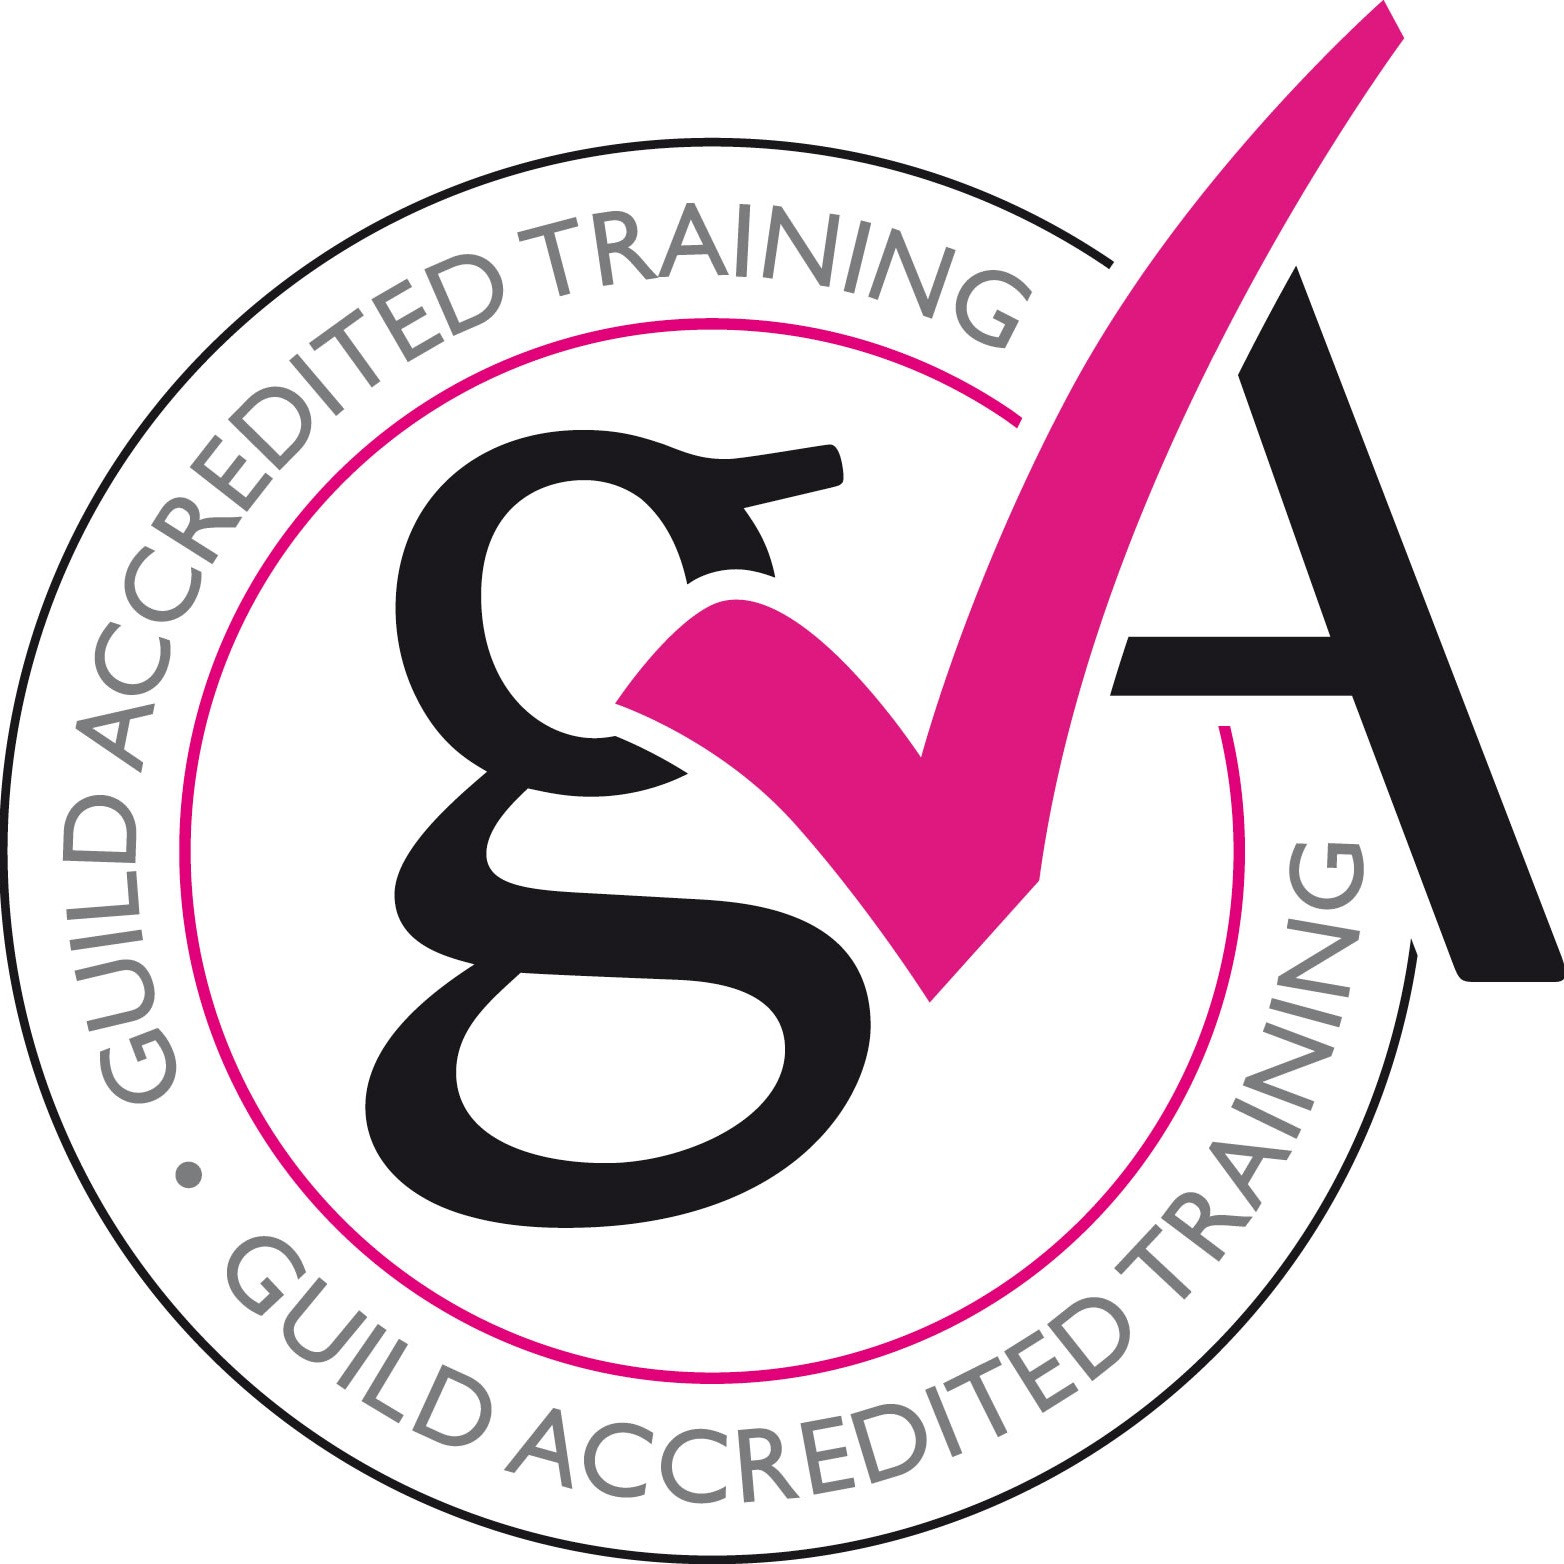 VIP One to One Accredited Course